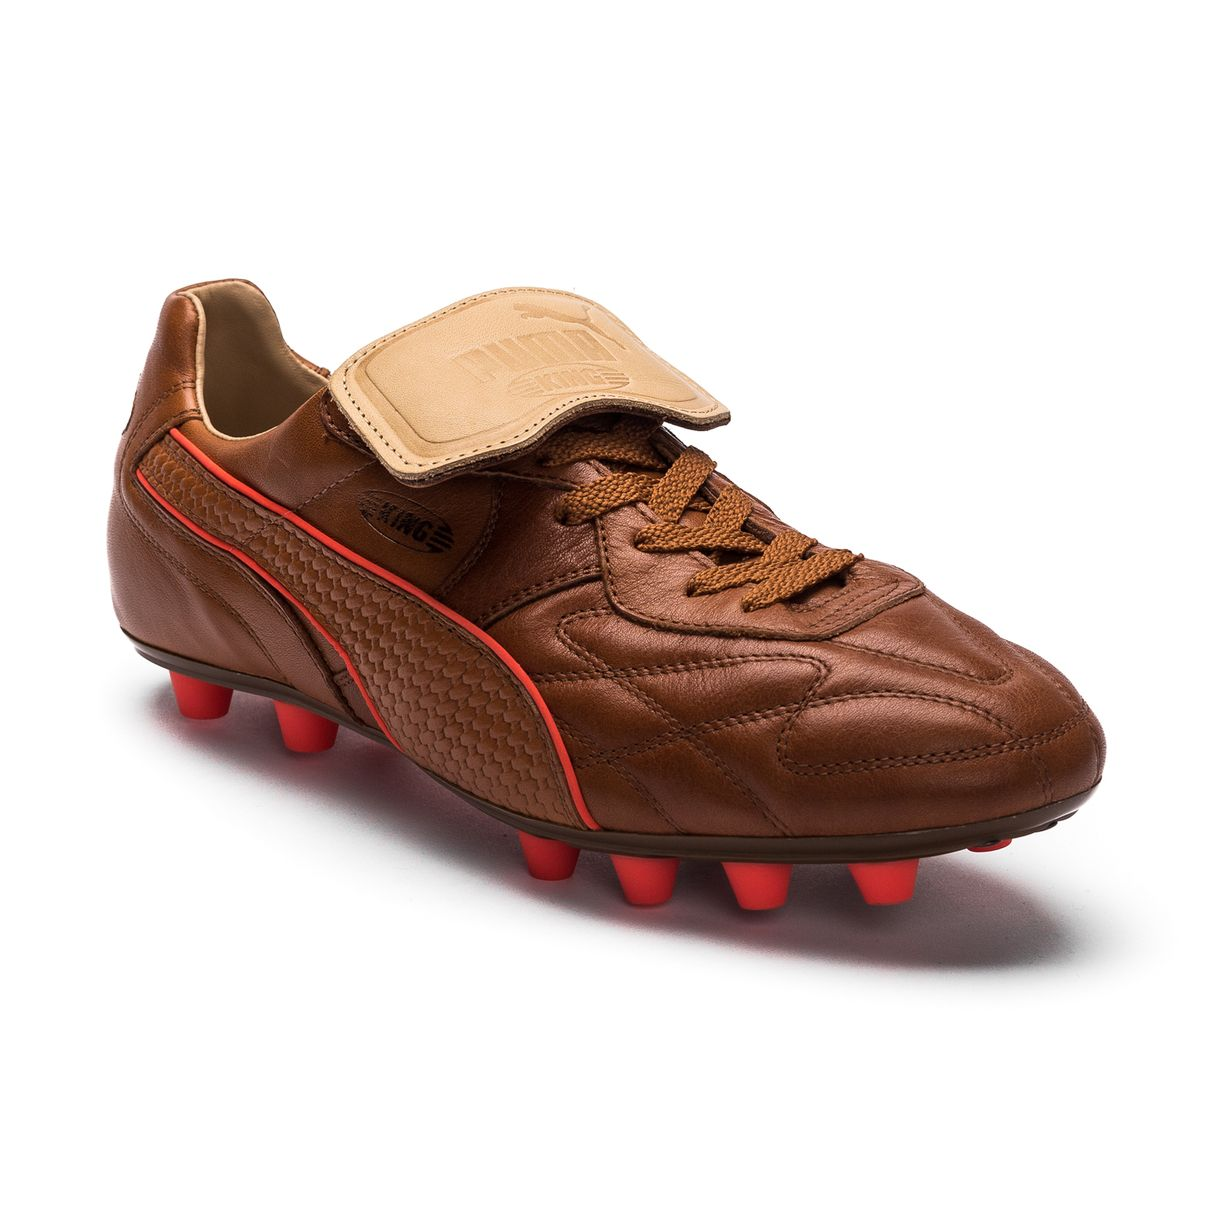 ... Click to enlarge image  puma king top mii naturale fg football boots brown d.jpg ... 806723ad0